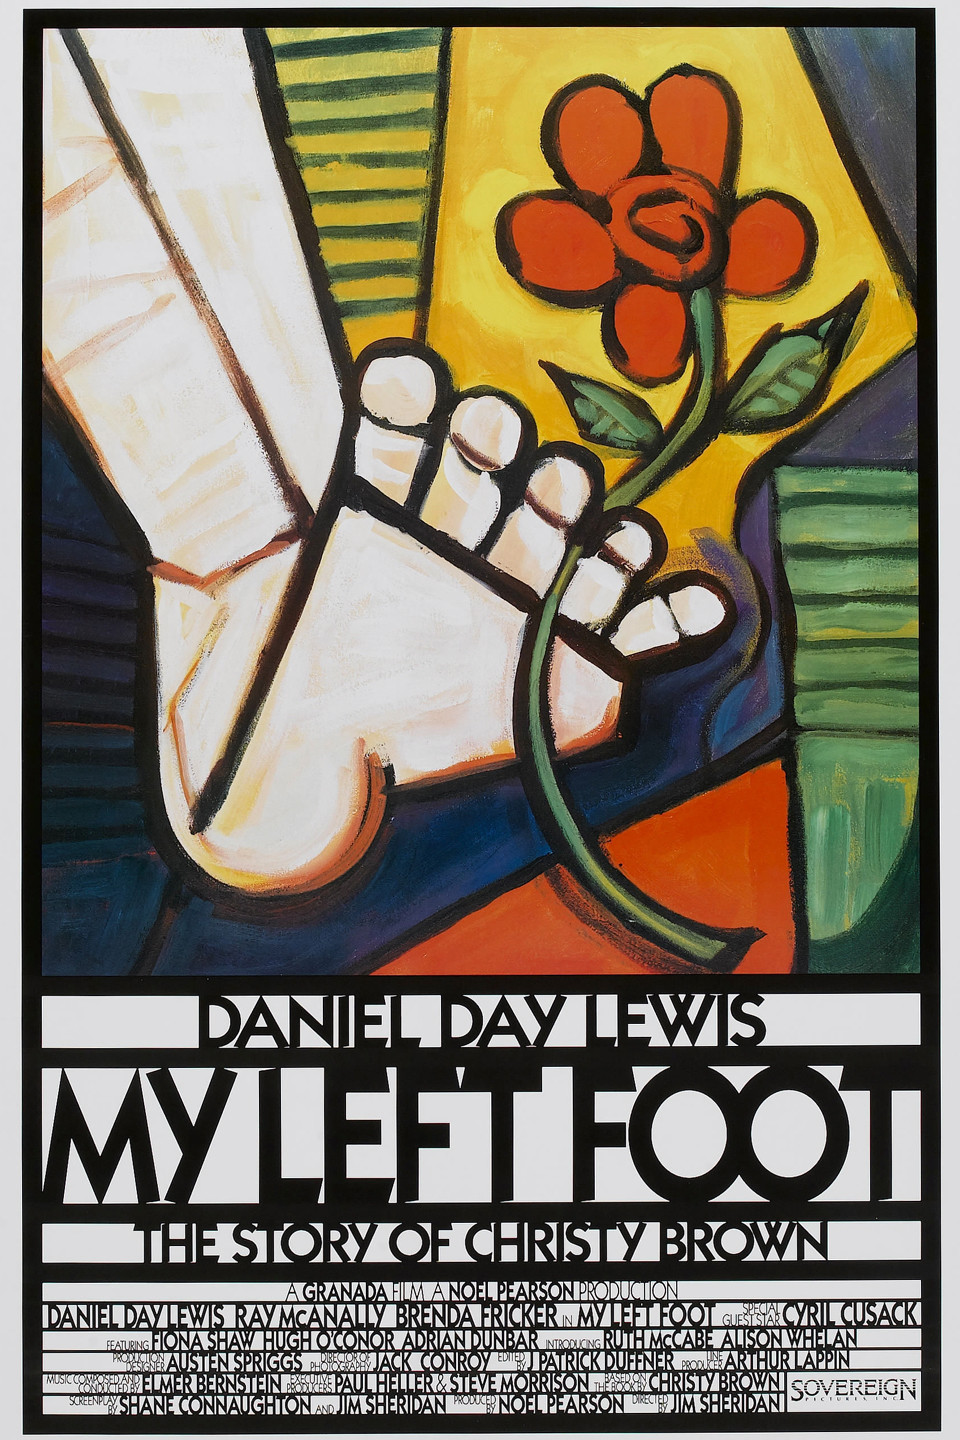 My Left Foot [1989]